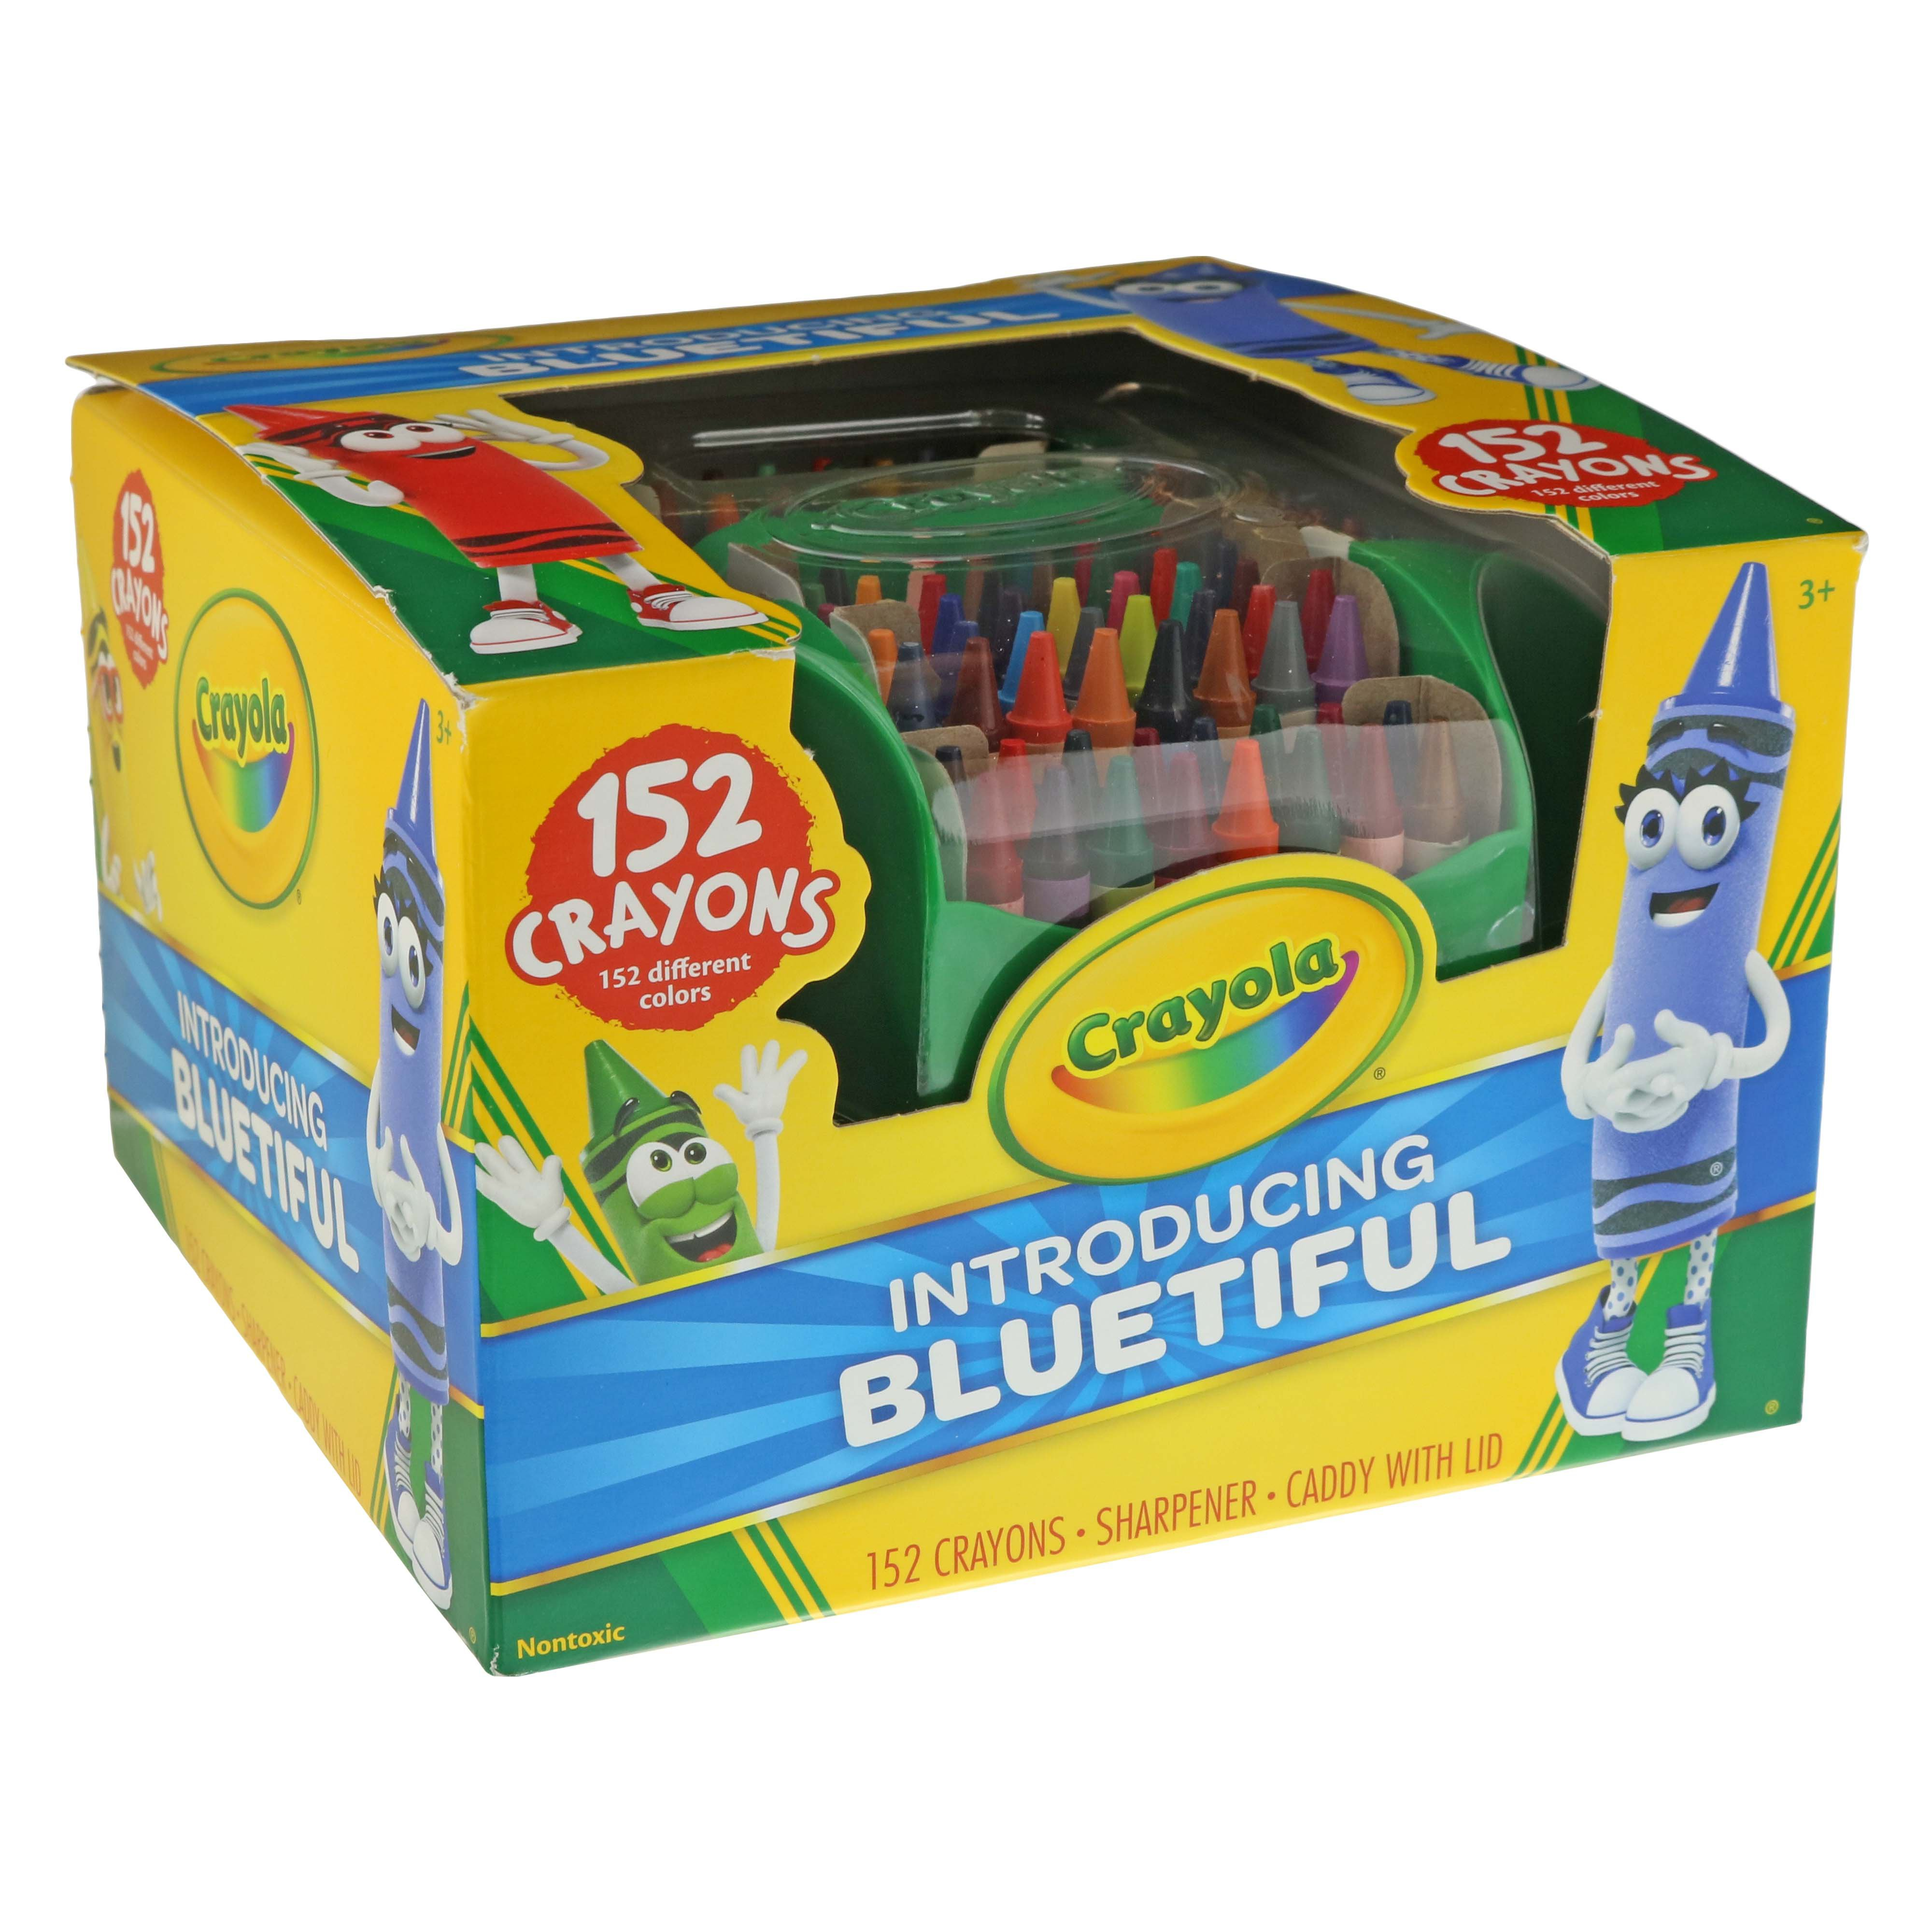 Crayola Ultimate Crayon Collection Shop Markers and Crayons at HEB